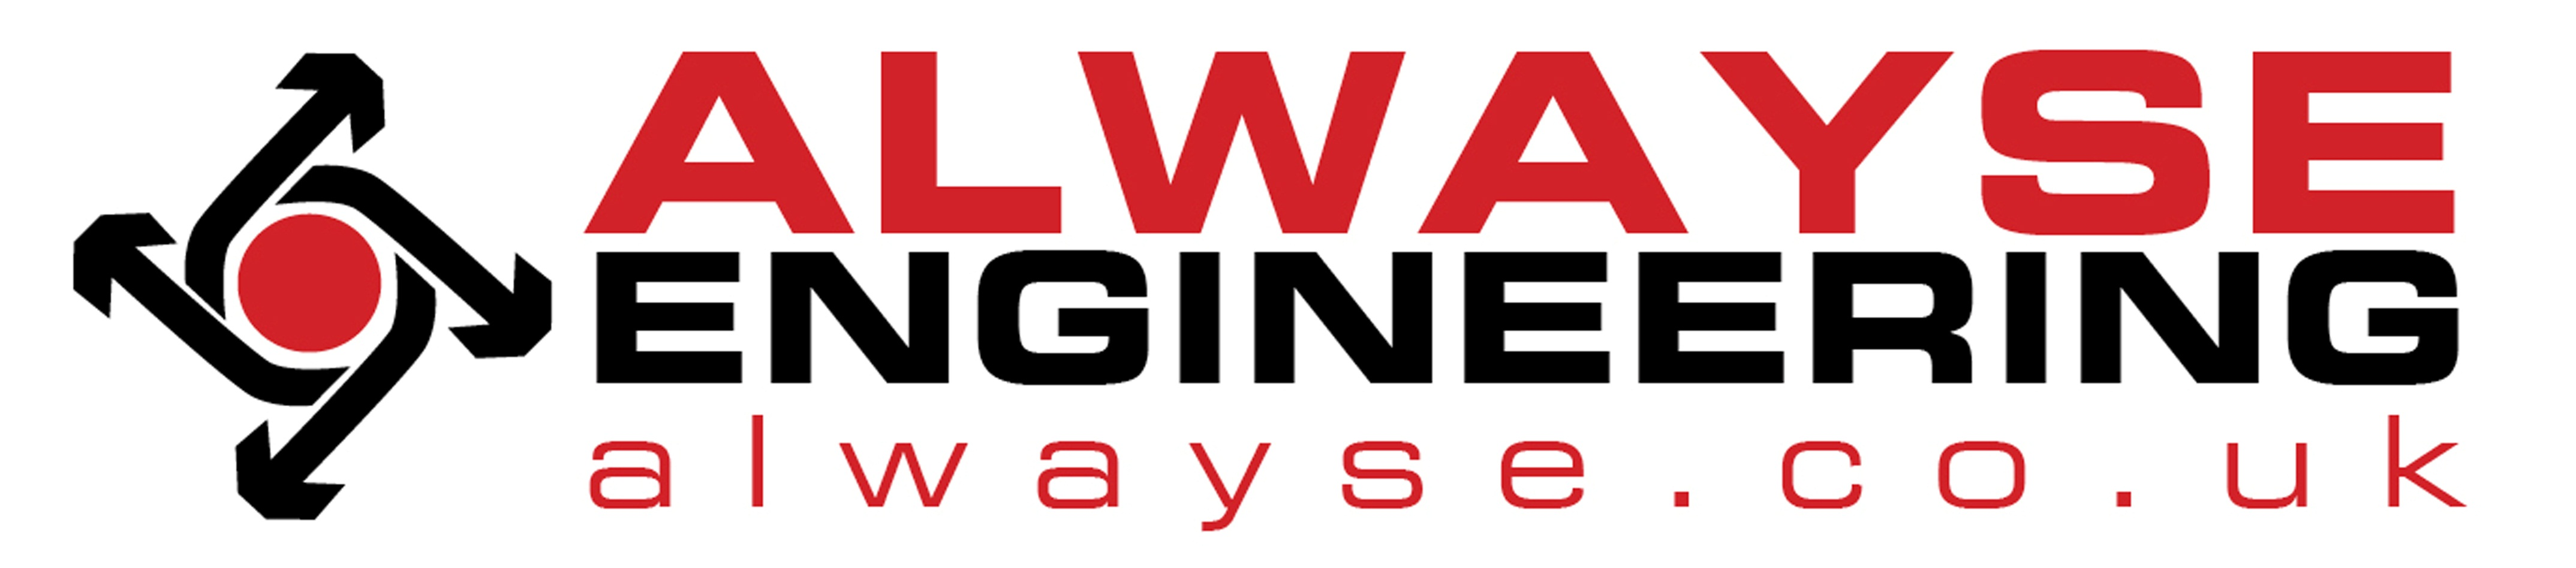 alwayse engineering logo